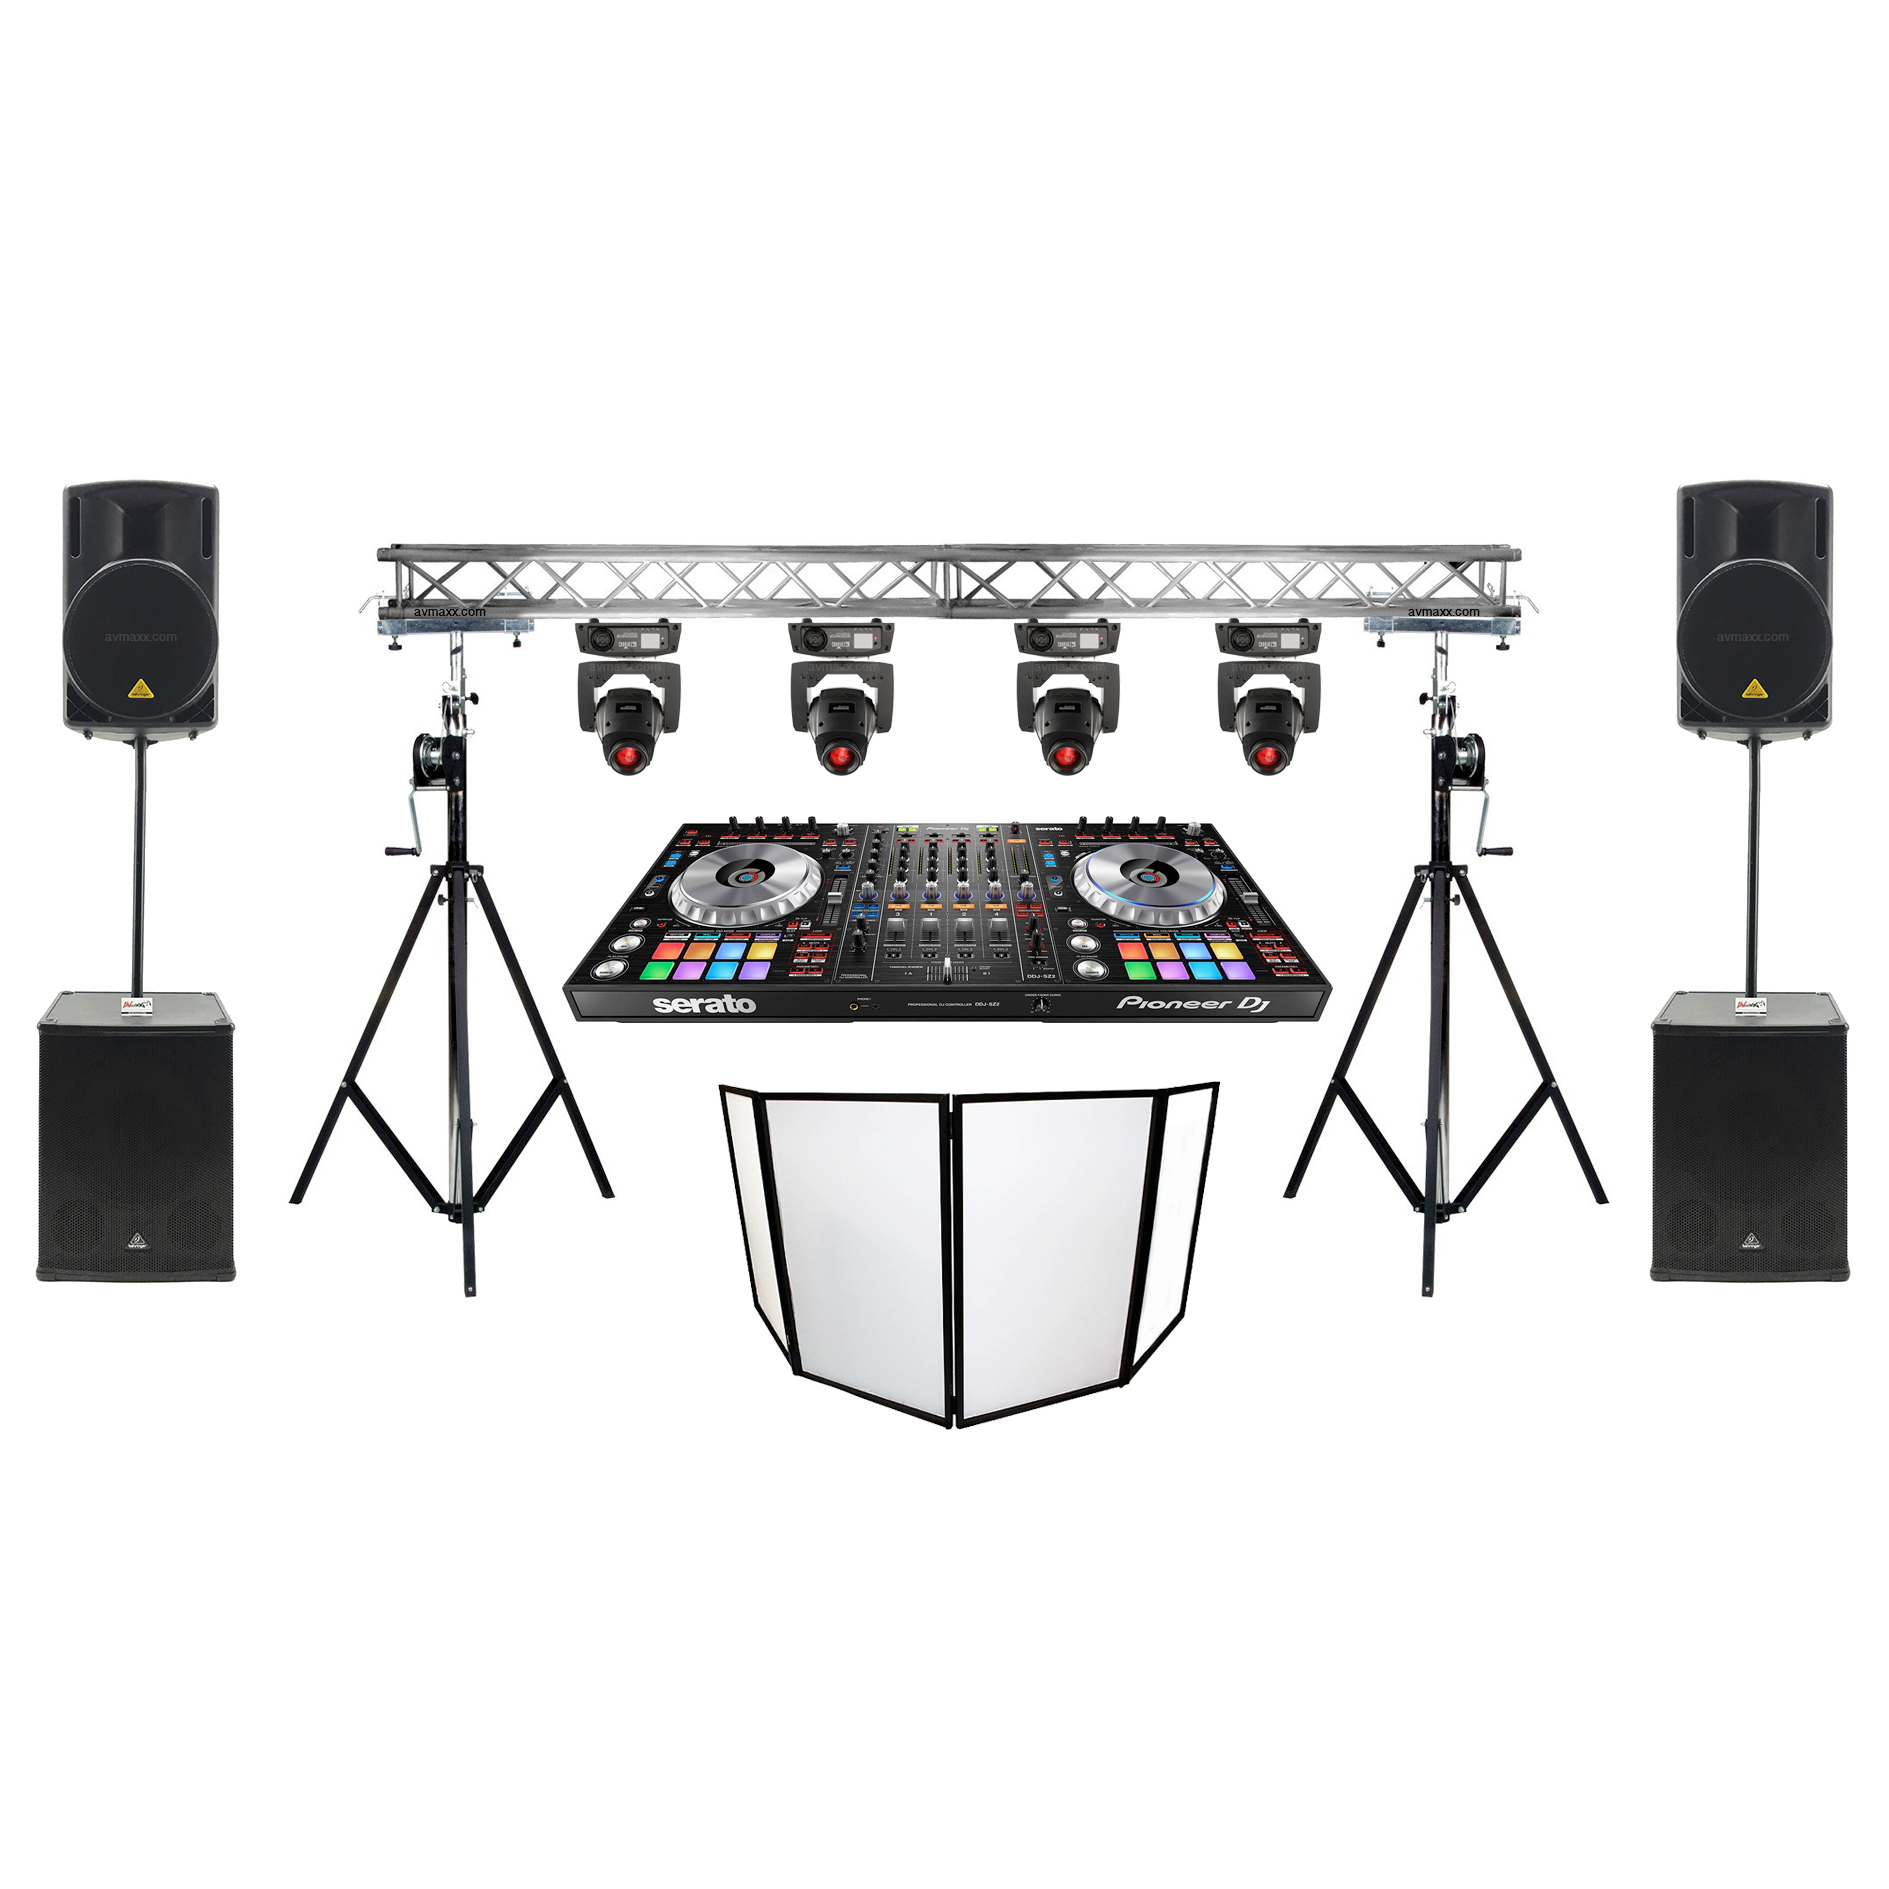 Diy Led Uplighting Rental Atlanta: Outdoor DJ Setup Mirrorballs T Truss Construction White DJ